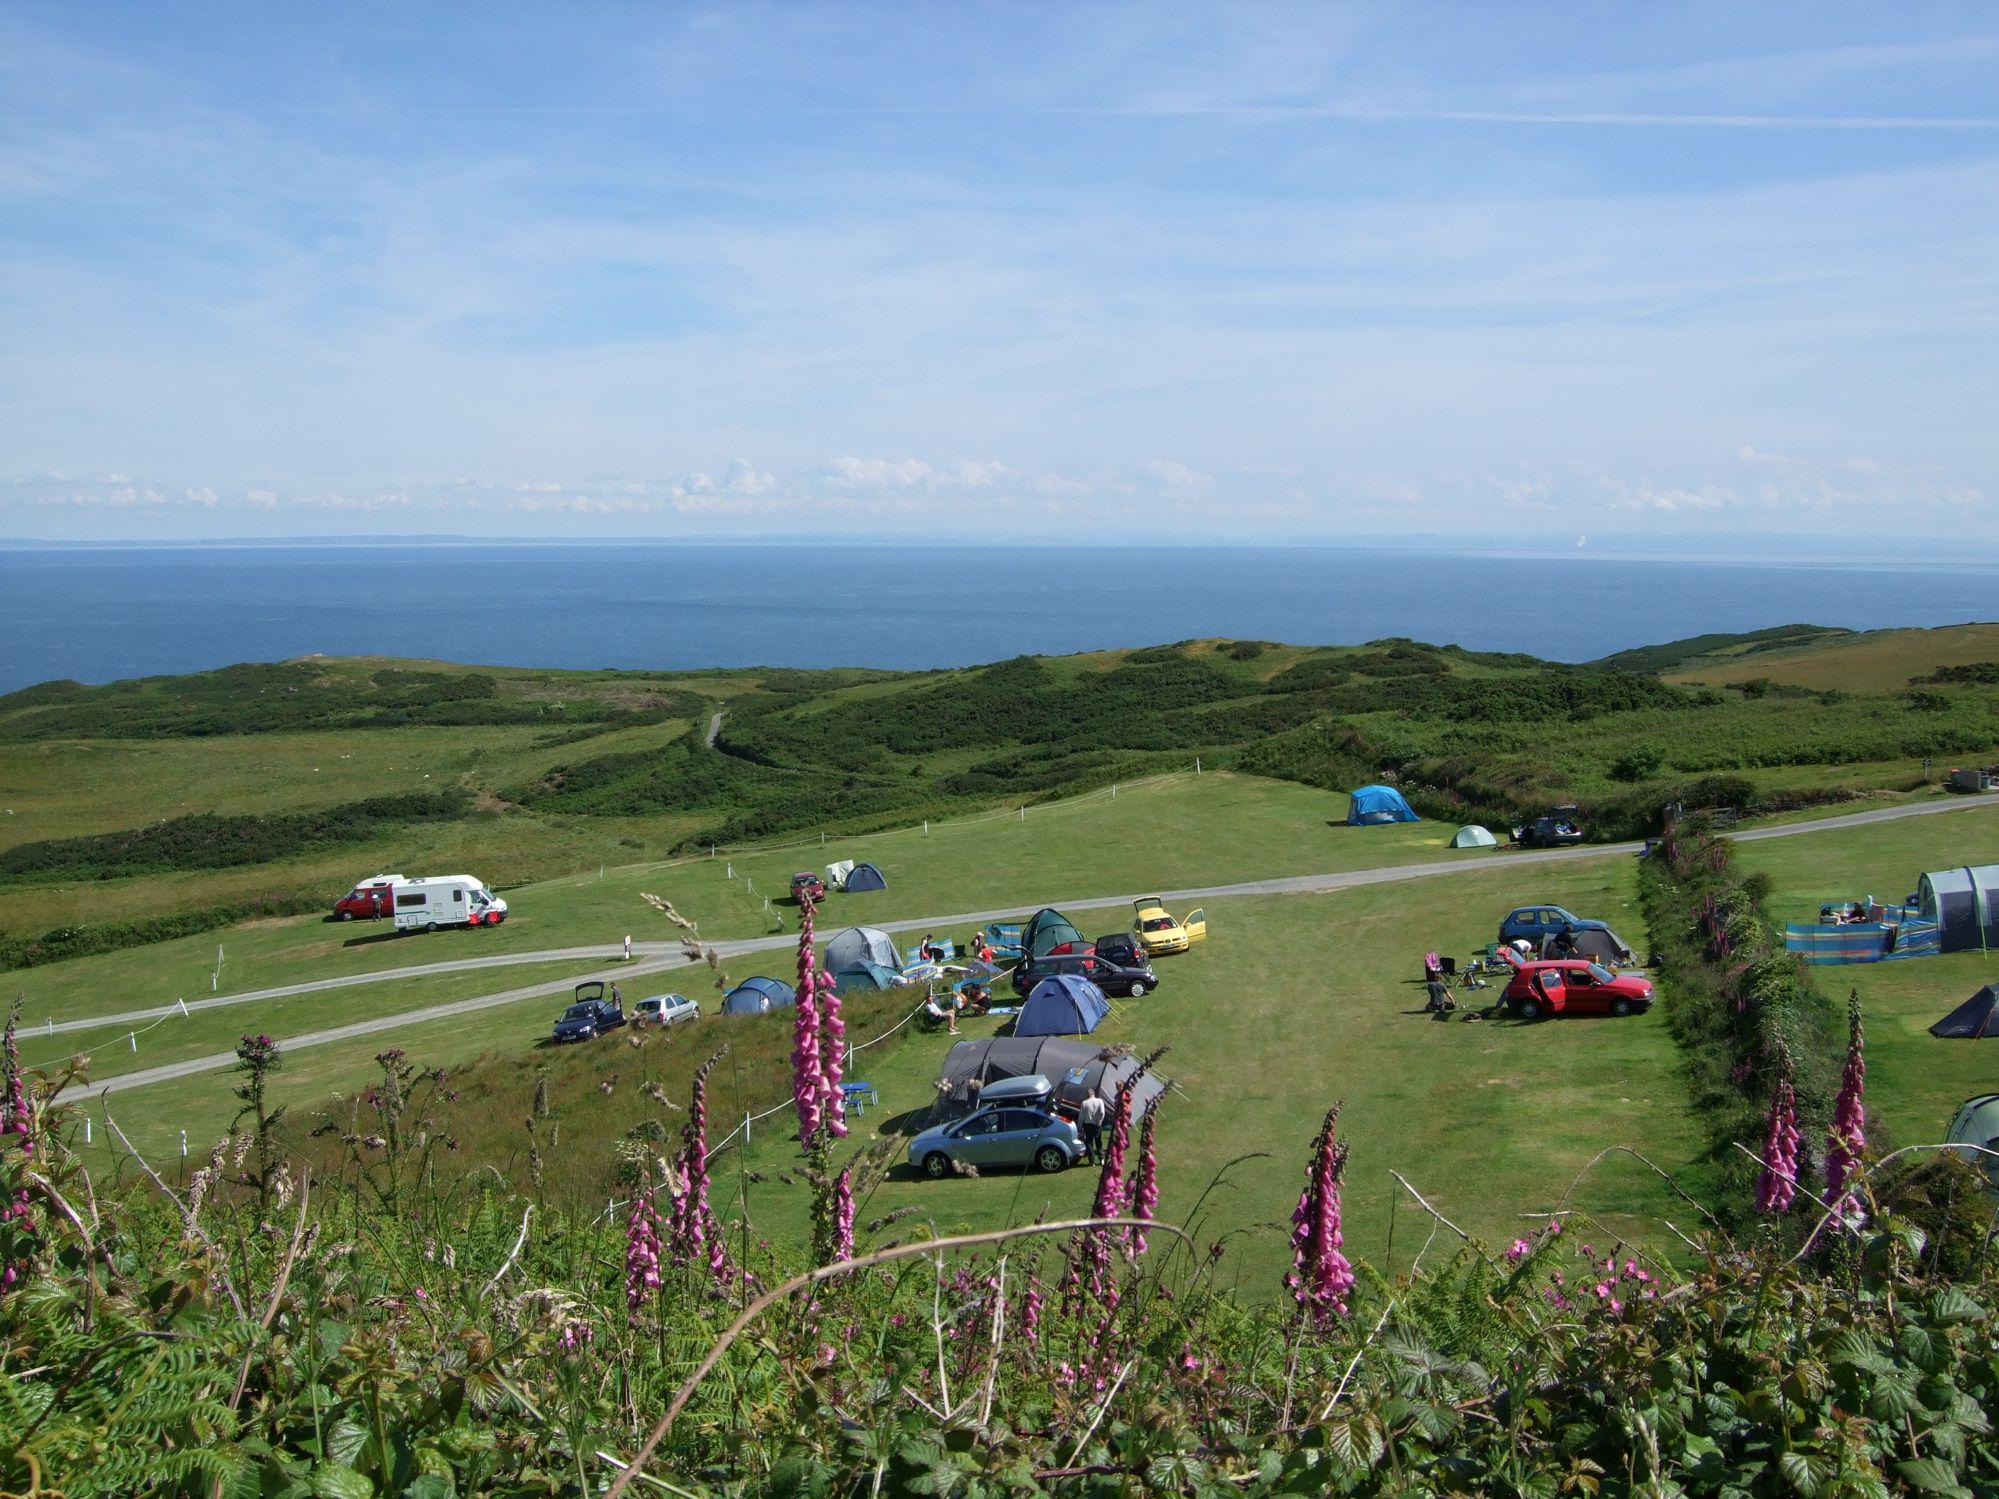 Mortehoe Camping | Best campsites in Mortehoe, Devon